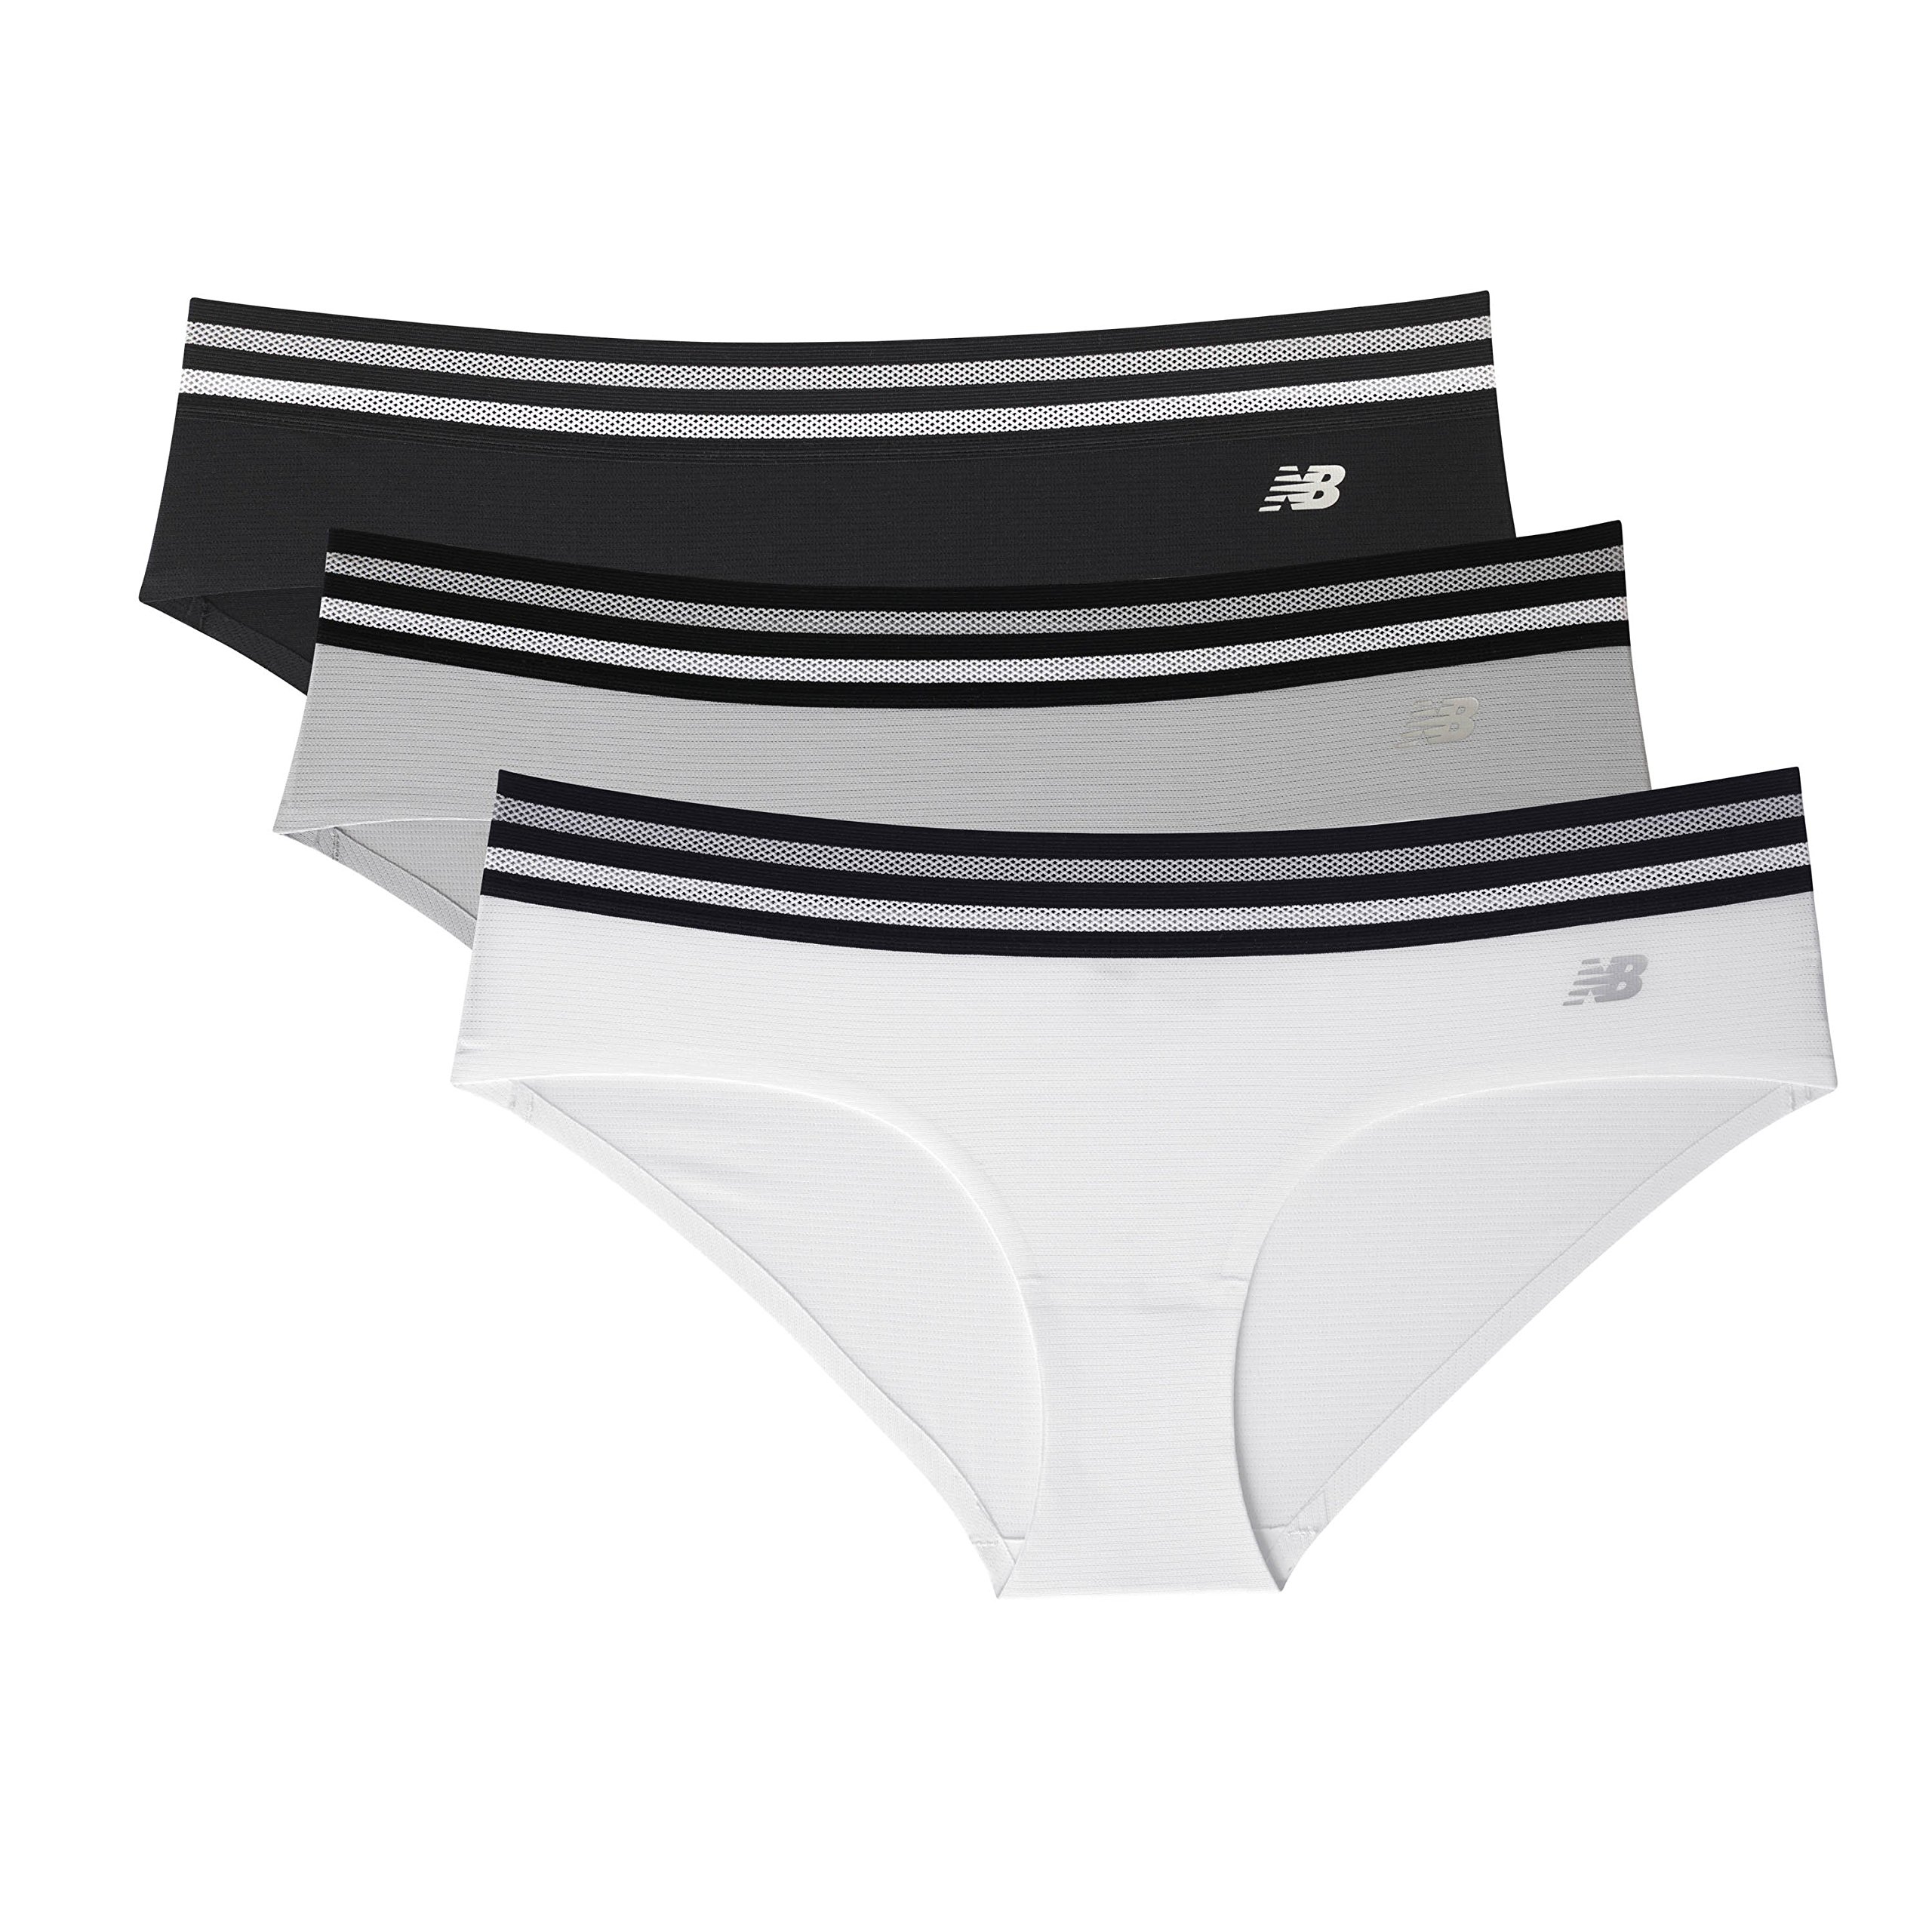 New Balance Womens Athletic Mesh Hipster Underwear (Pack Of 3),White/Silver/Black,Medium/10-12